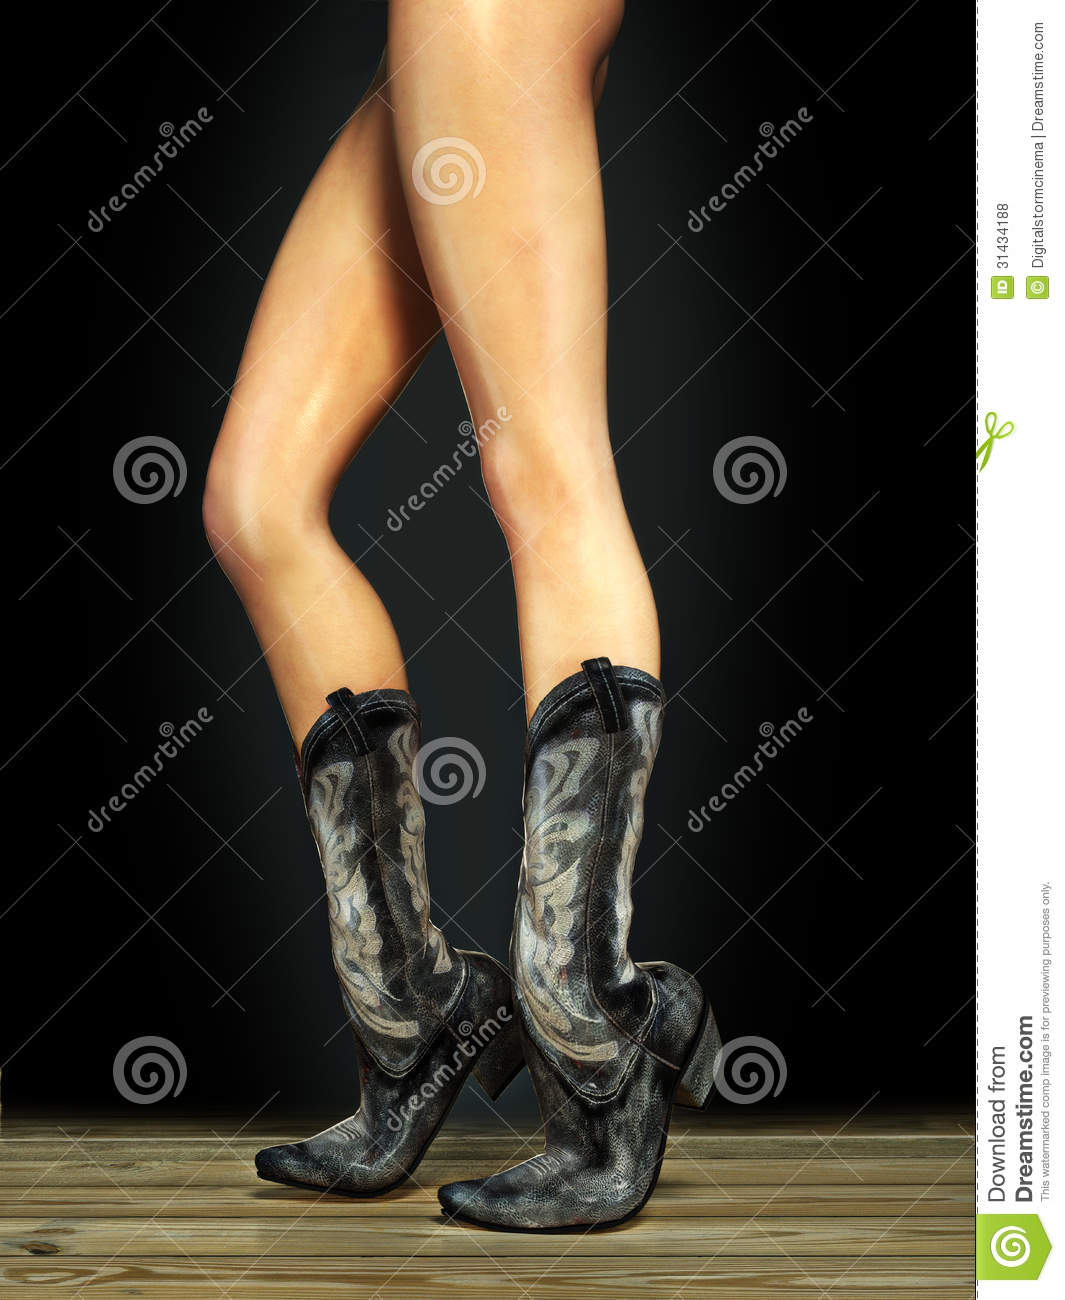 Long Female Legs Royalty Free Stock Photos - Image: 31434188